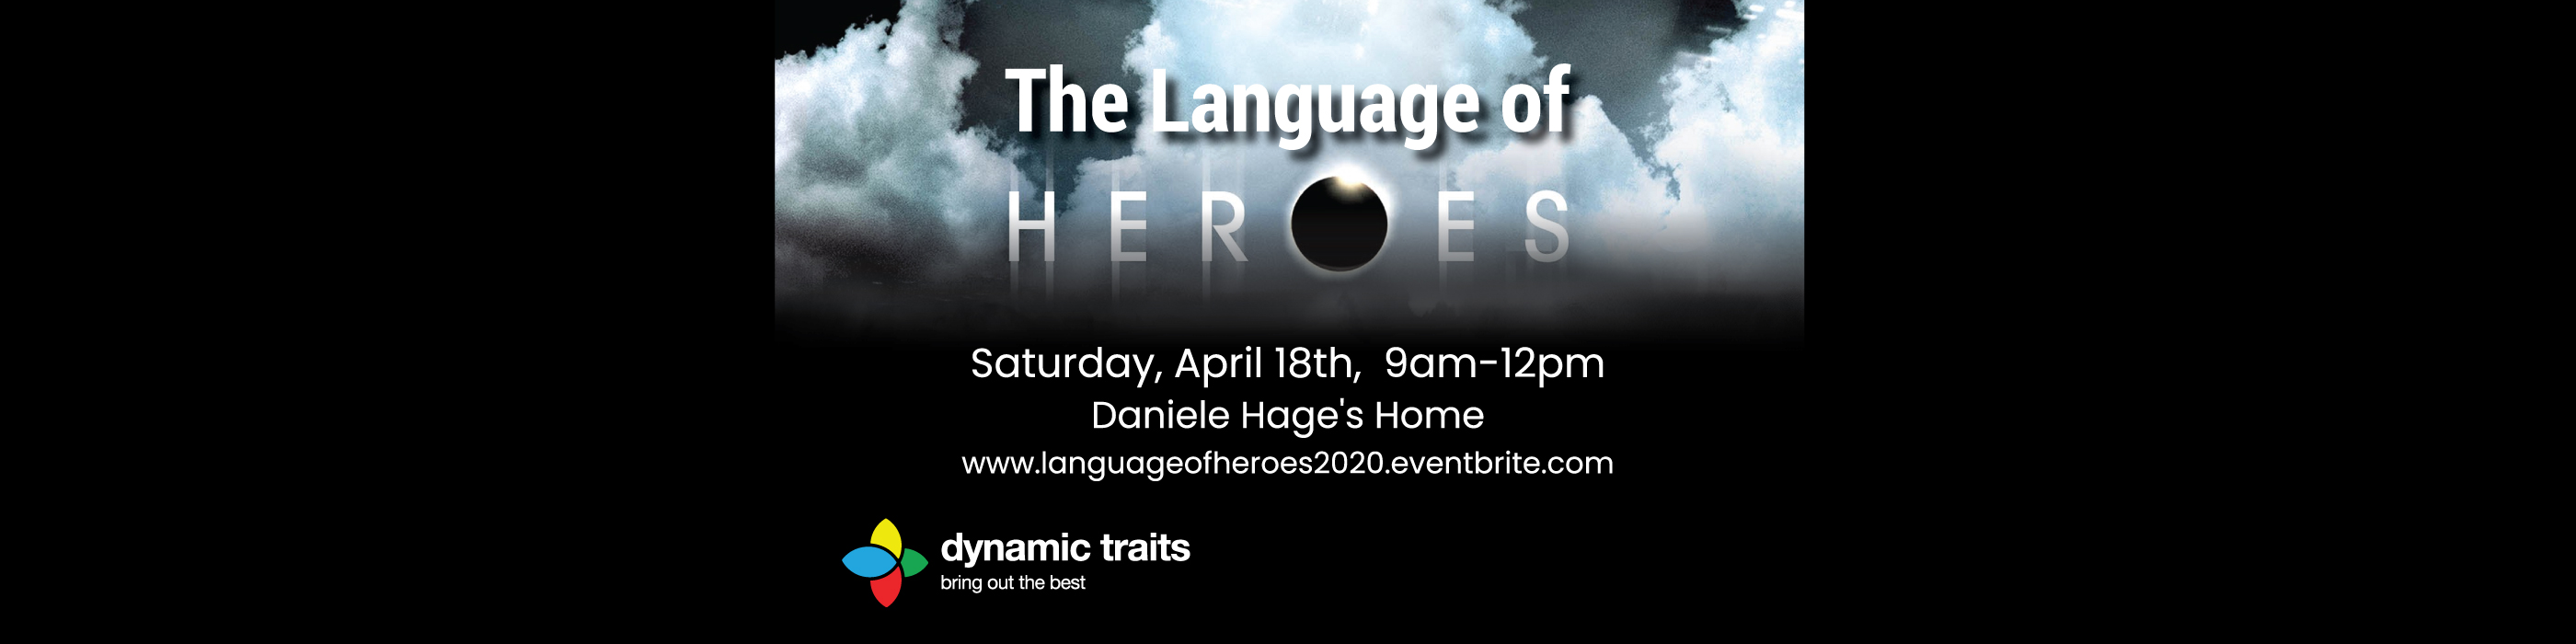 The-Language-of-Heroes-041820-WEB-2800x700